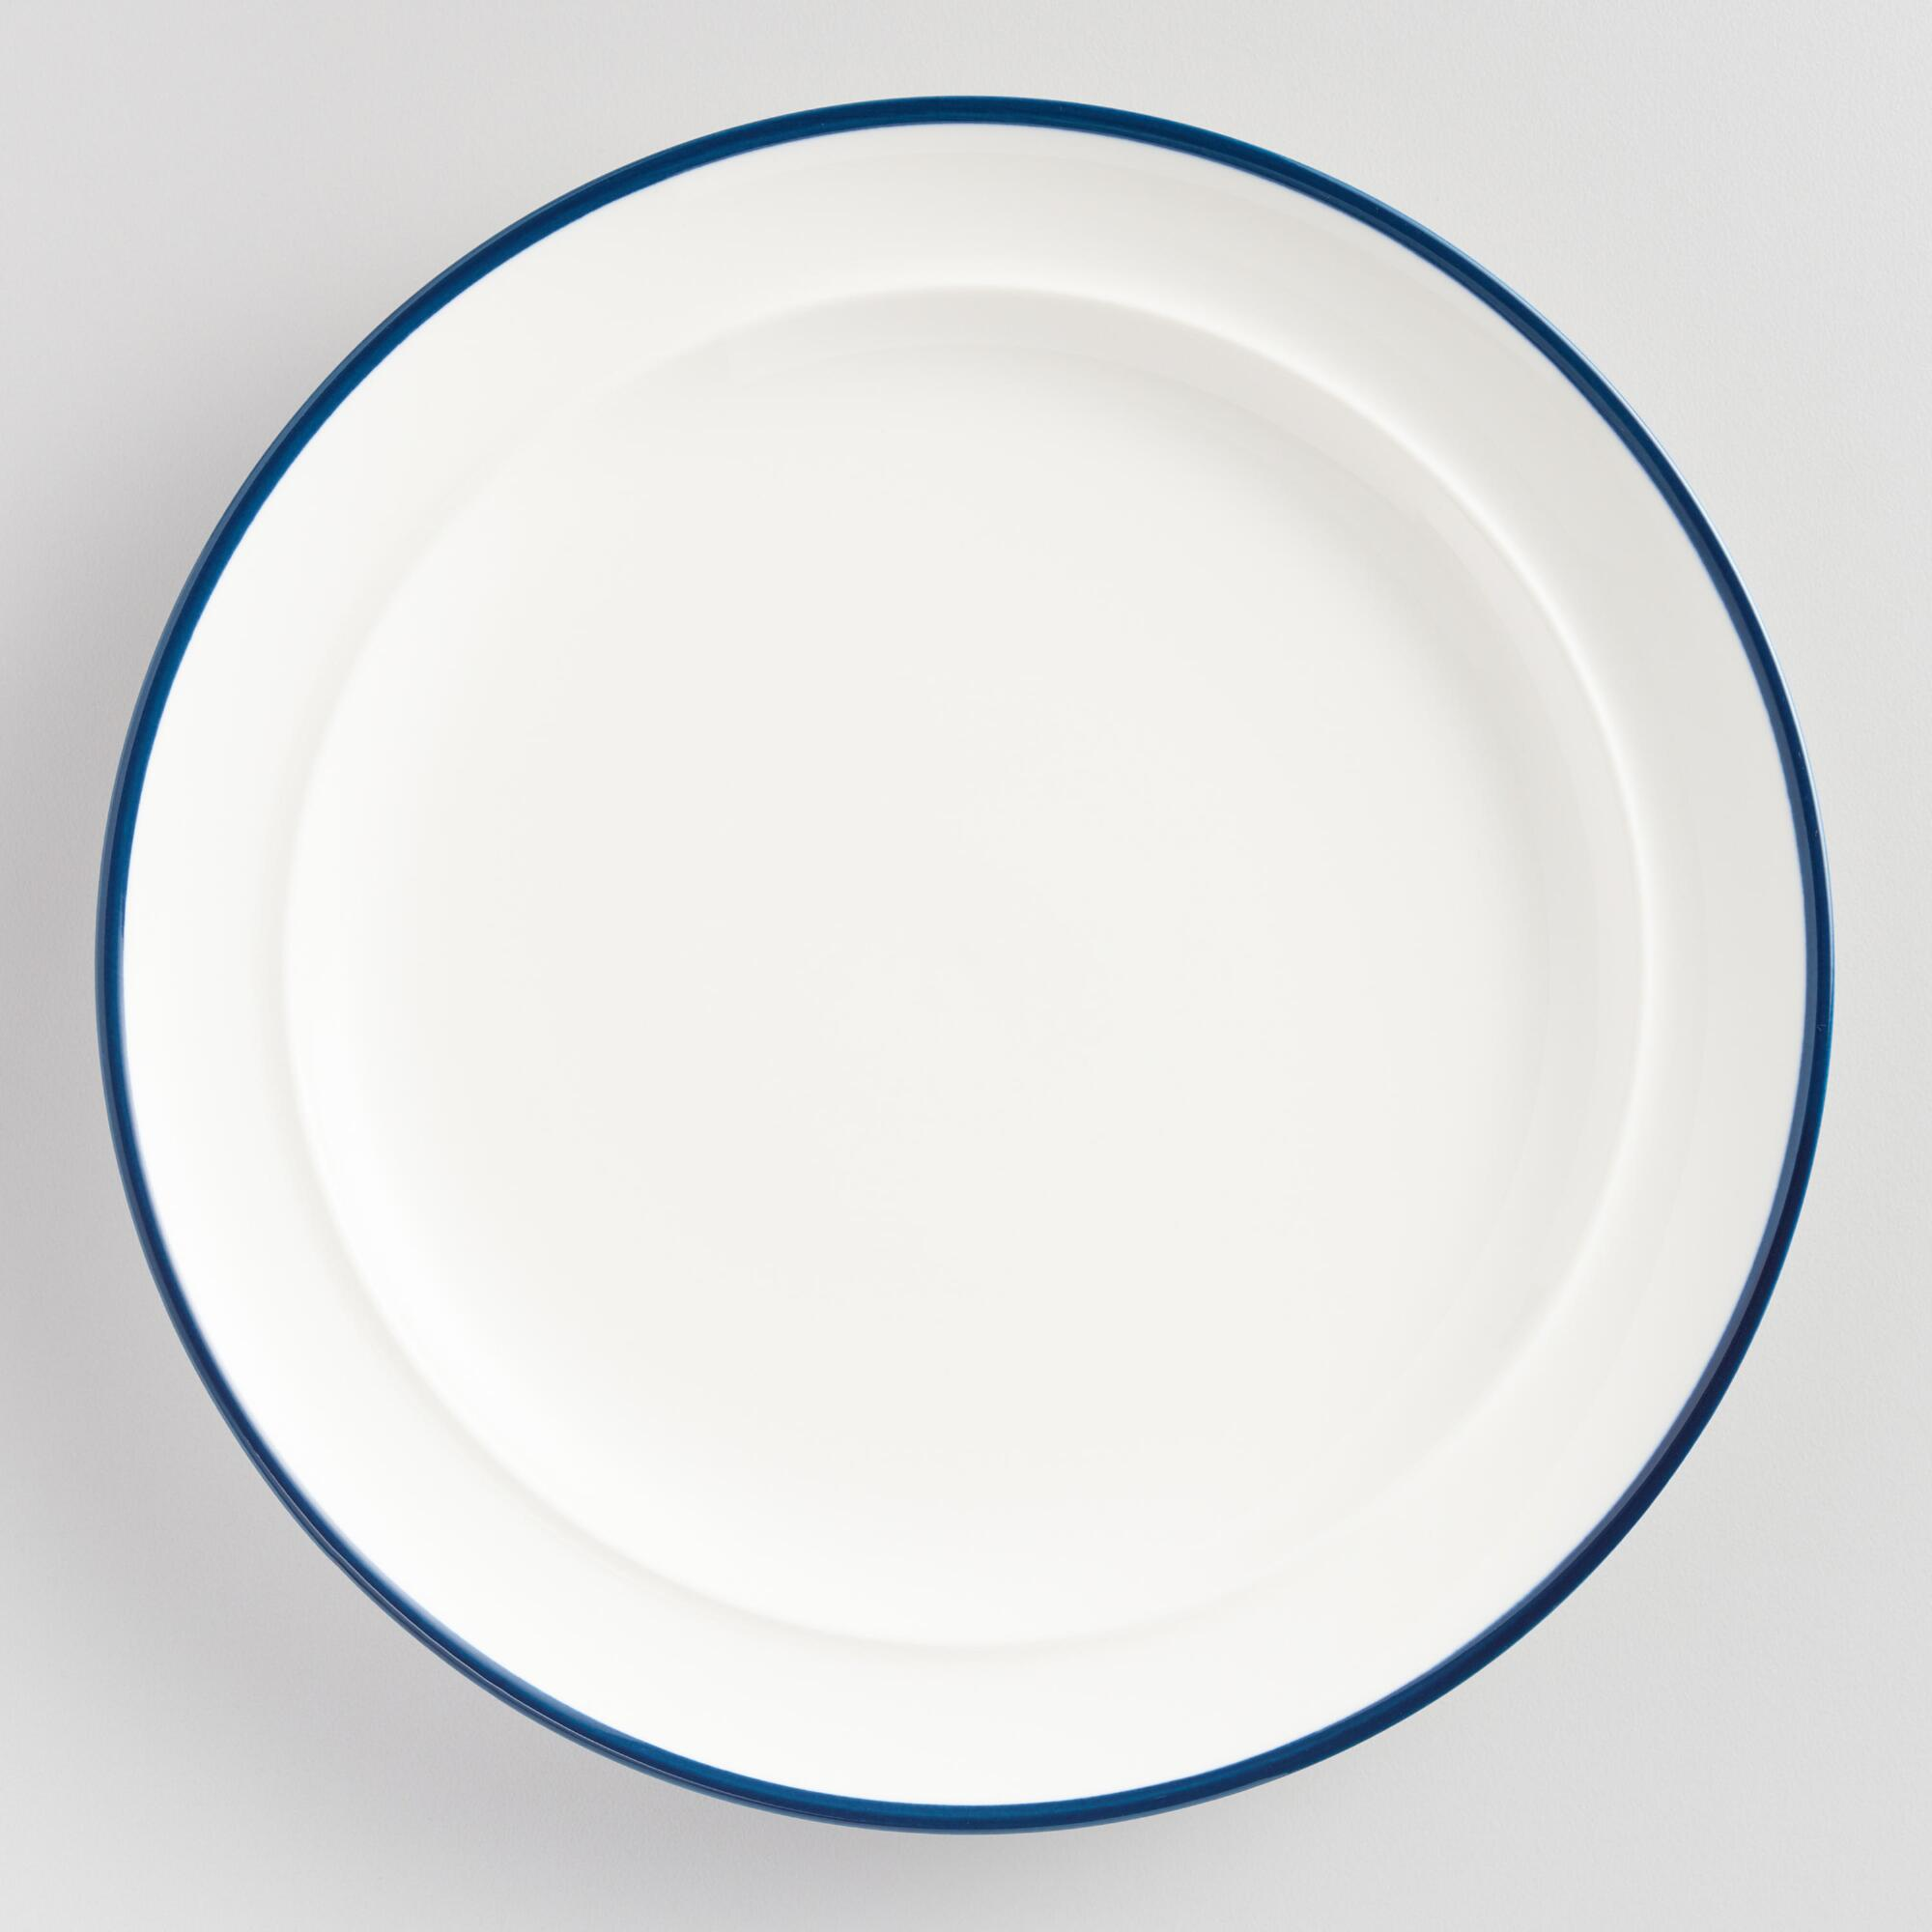 Navy Blue Rim Salad Plates Set of 6 by World Market